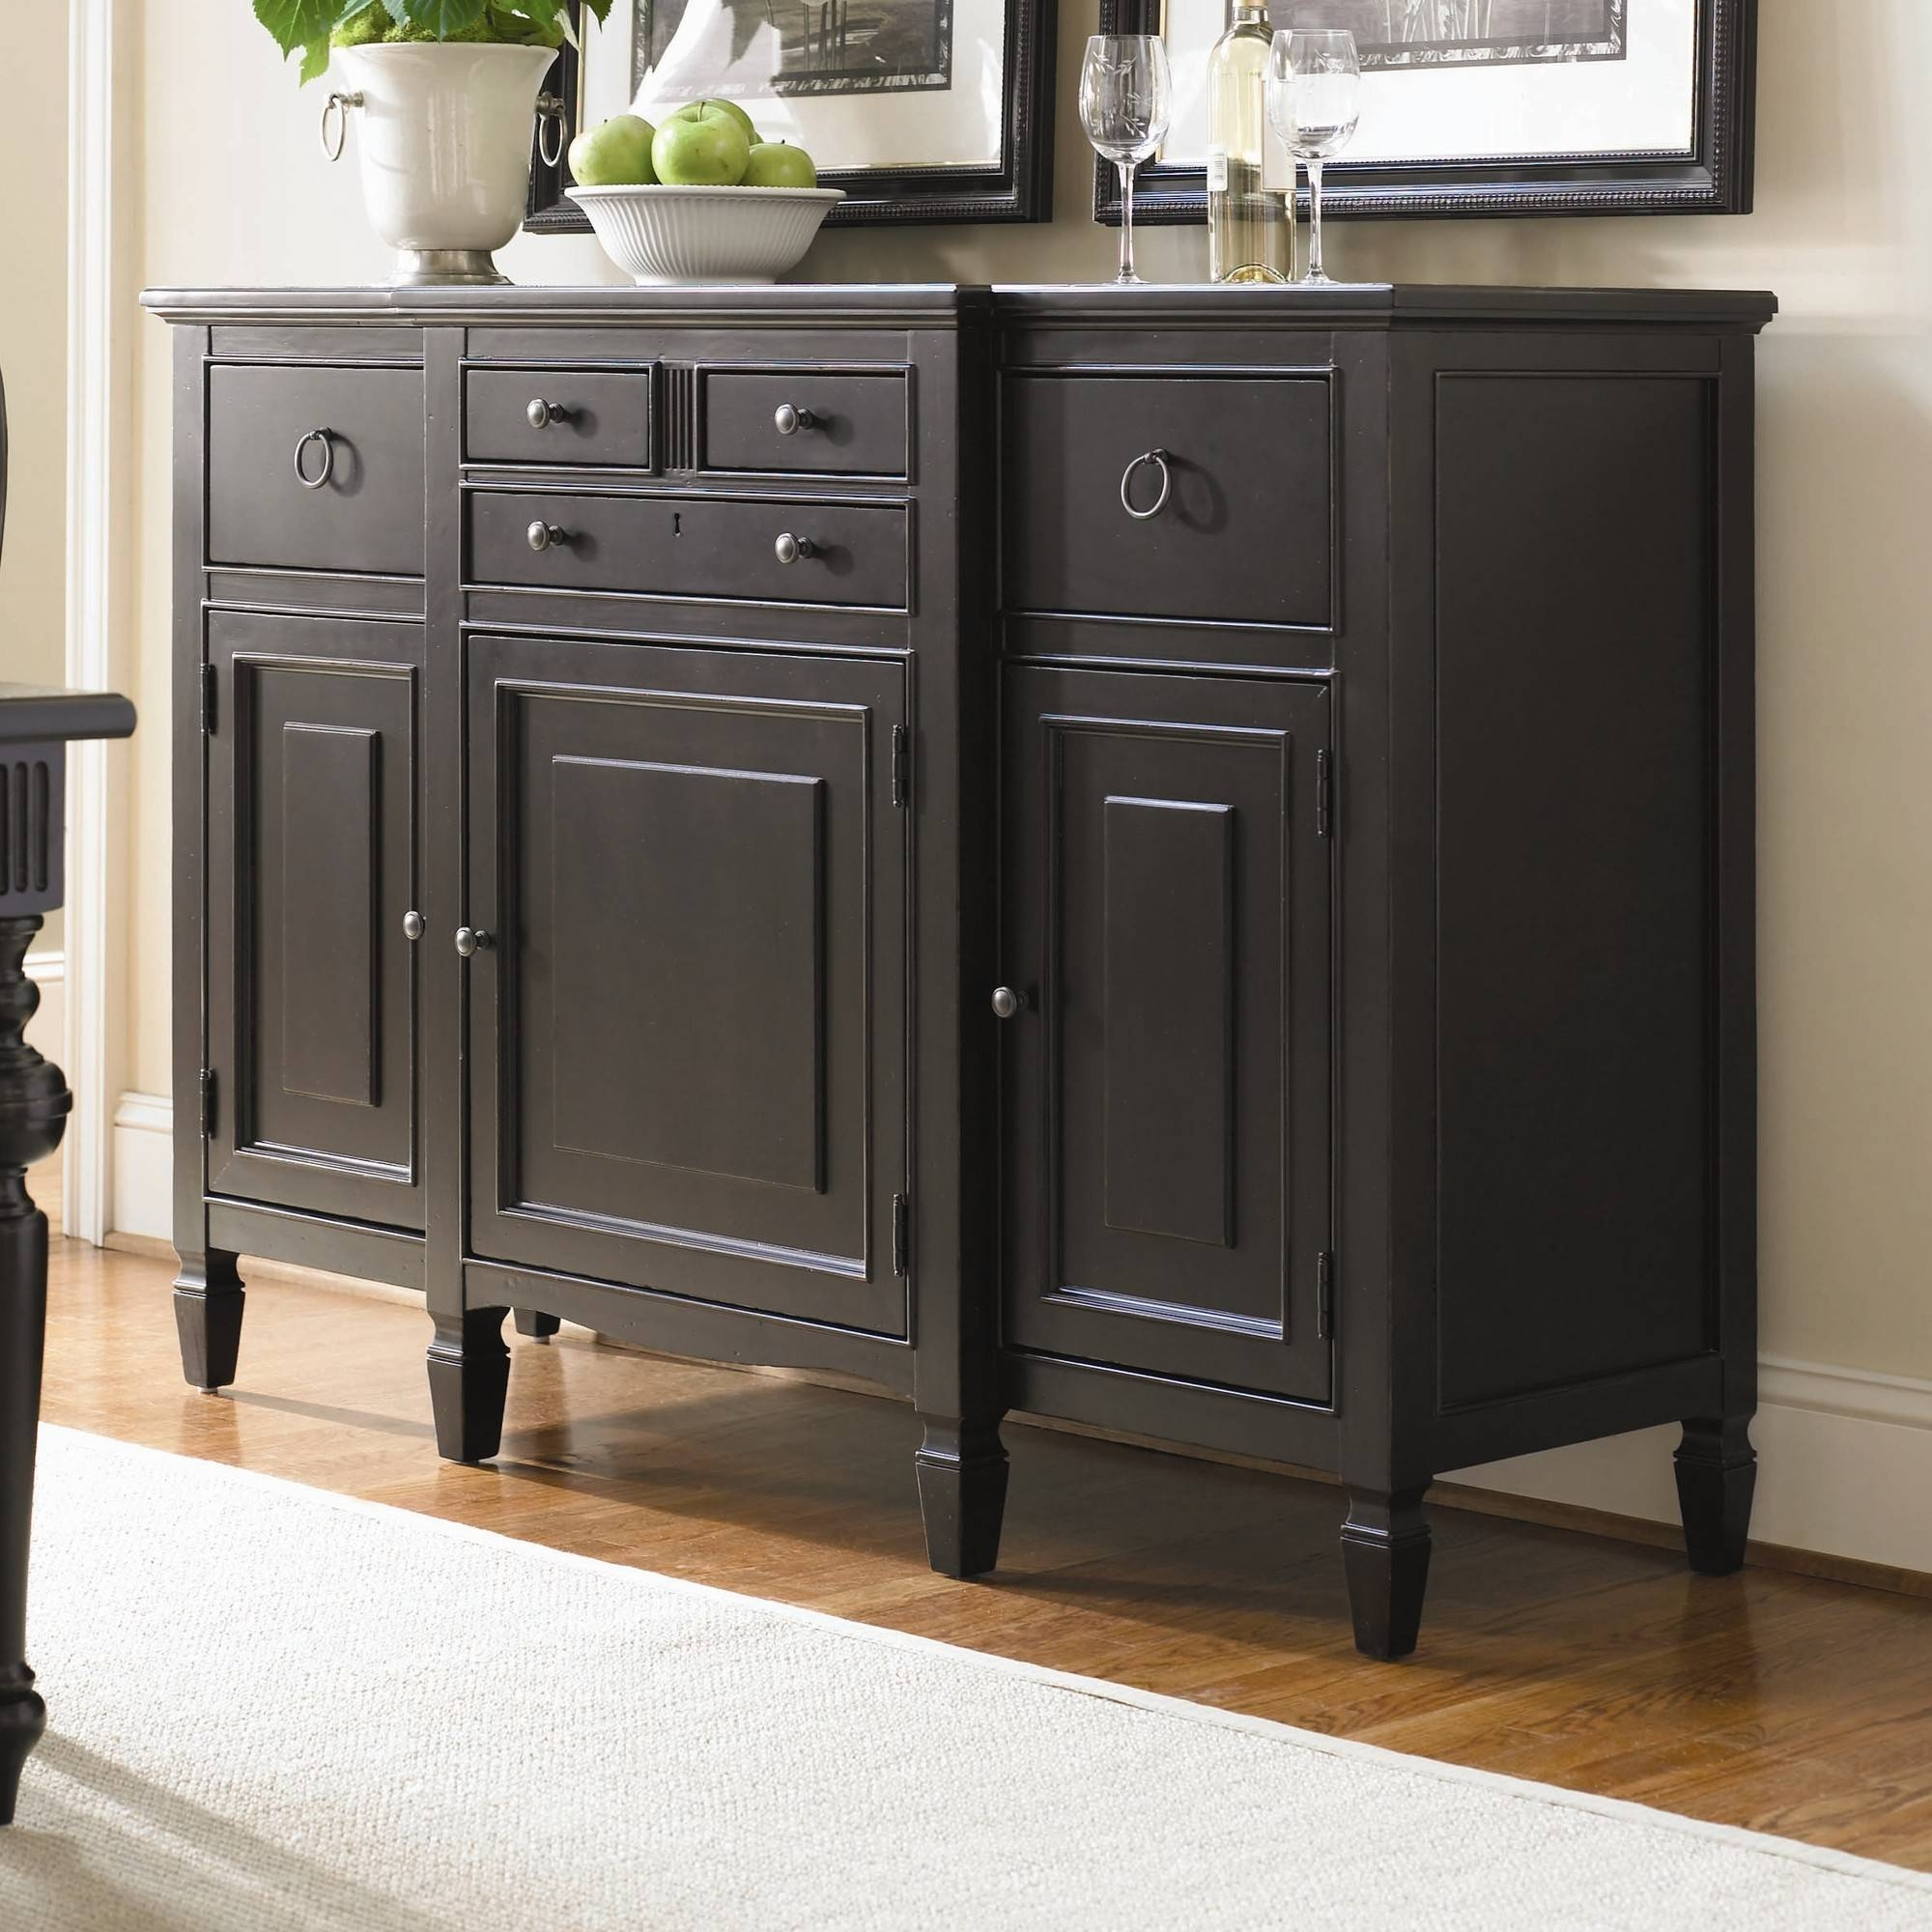 Furniture: White Sideboard Buffet With Unique Black Table Lamp And In Most Current Black Buffet Sideboards (#5 of 15)